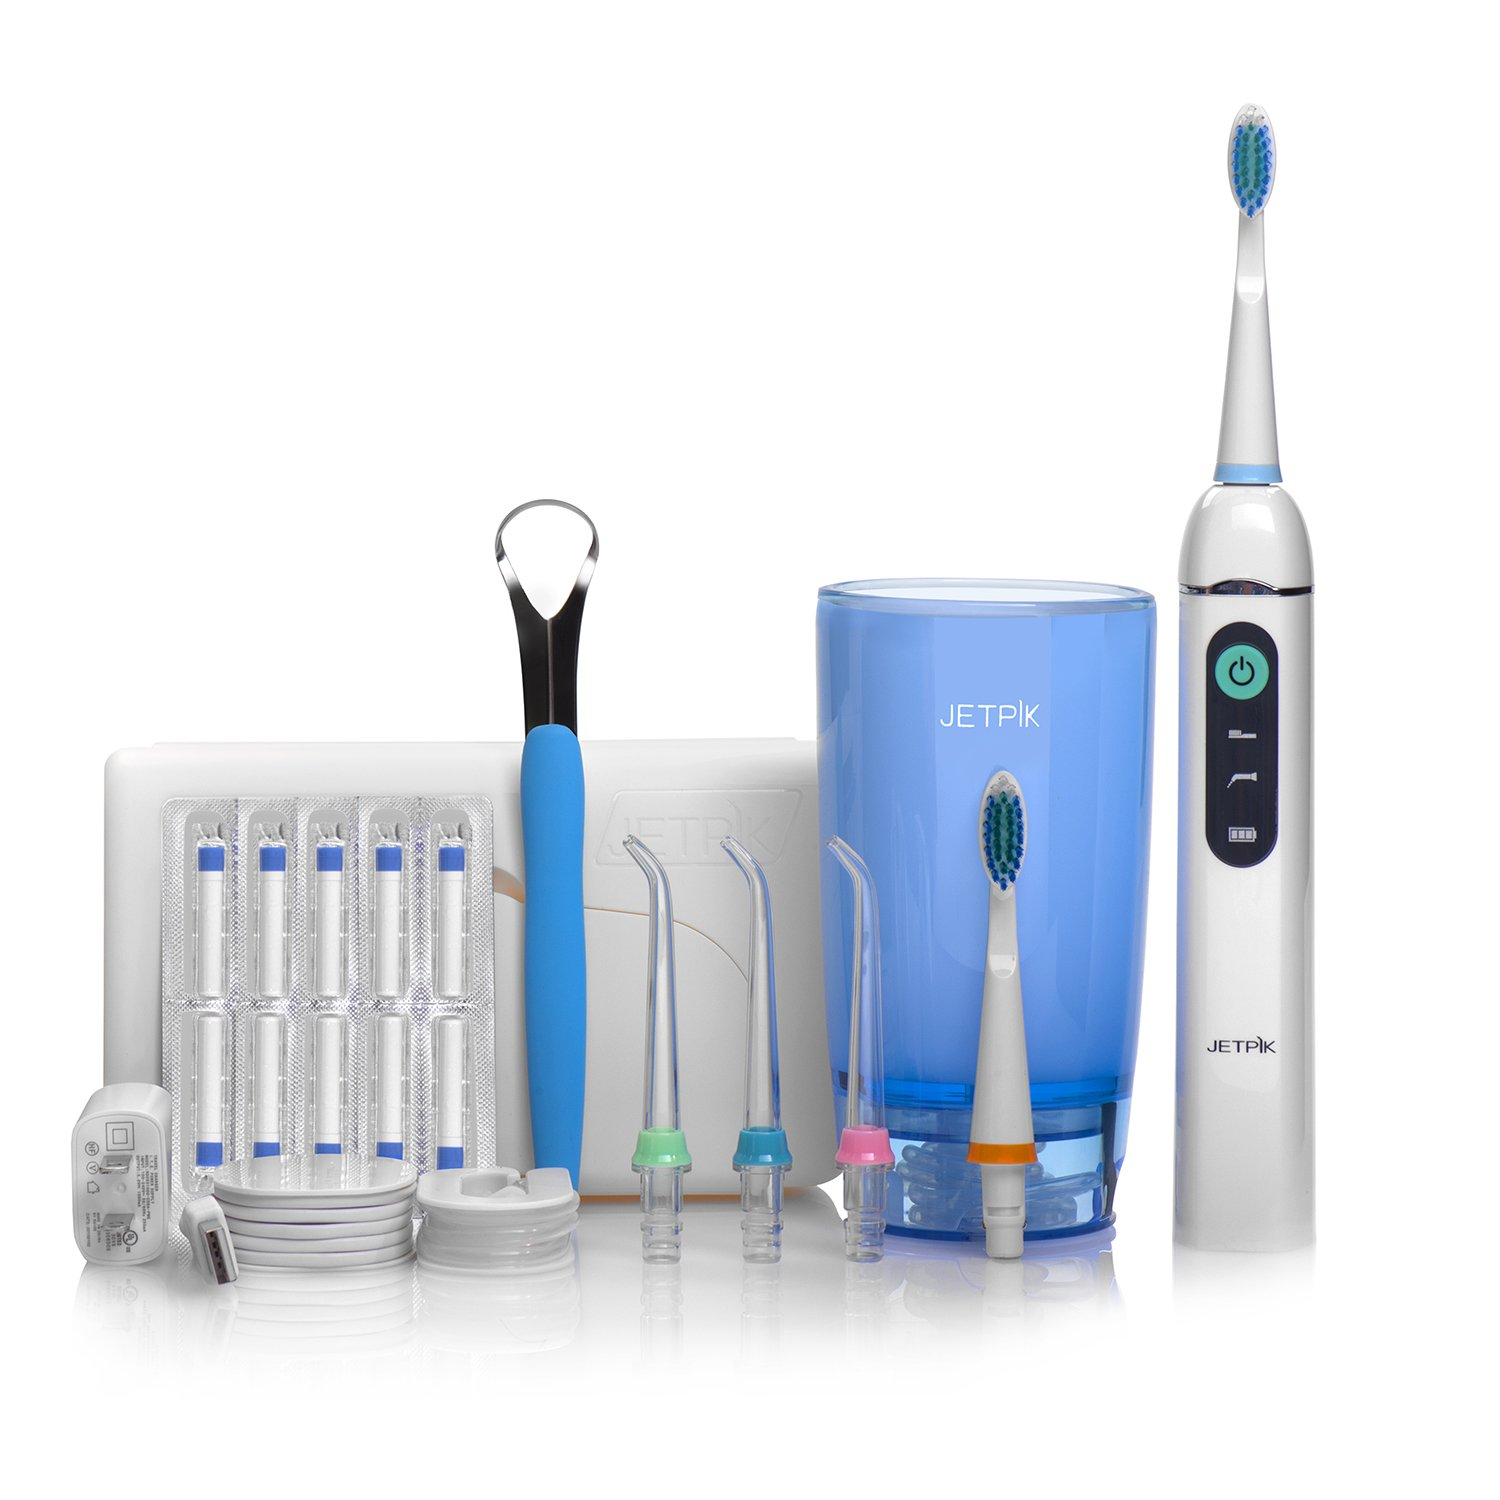 Electric Water Flosser Set with Travel Case, Charger, Tongue Cleaner, Toothbrush, and Flosser Tips, Rechargeable Flosser & Sonic Toothbrush - JP200 Elite - Jetpik